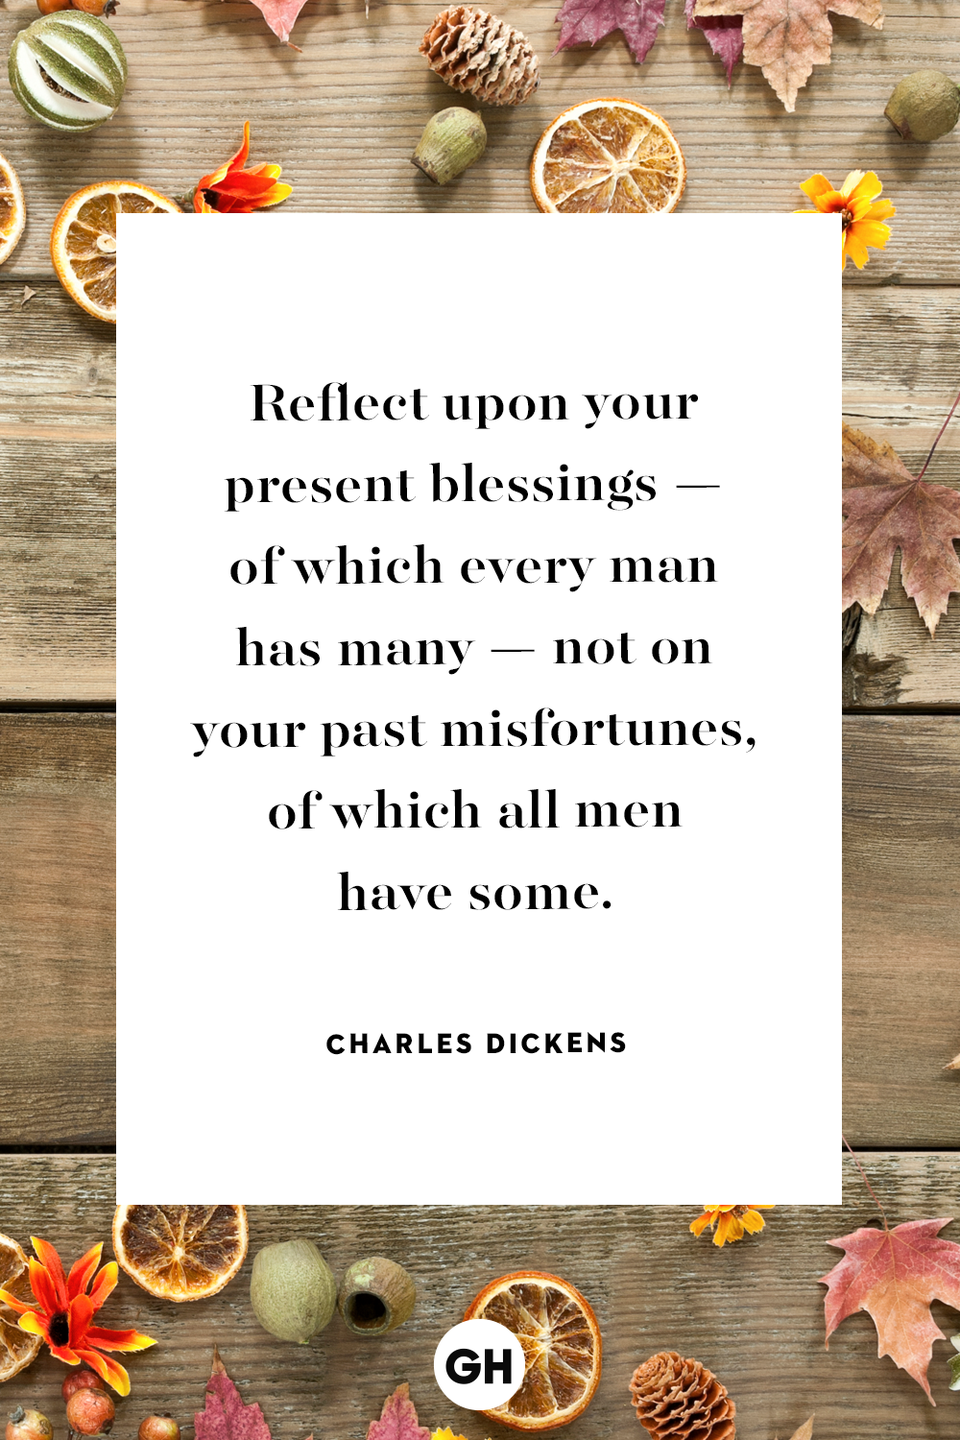 <p>Reflect upon your present blessings — of which every man has many — not on your past misfortunes, of which all men have some.</p>